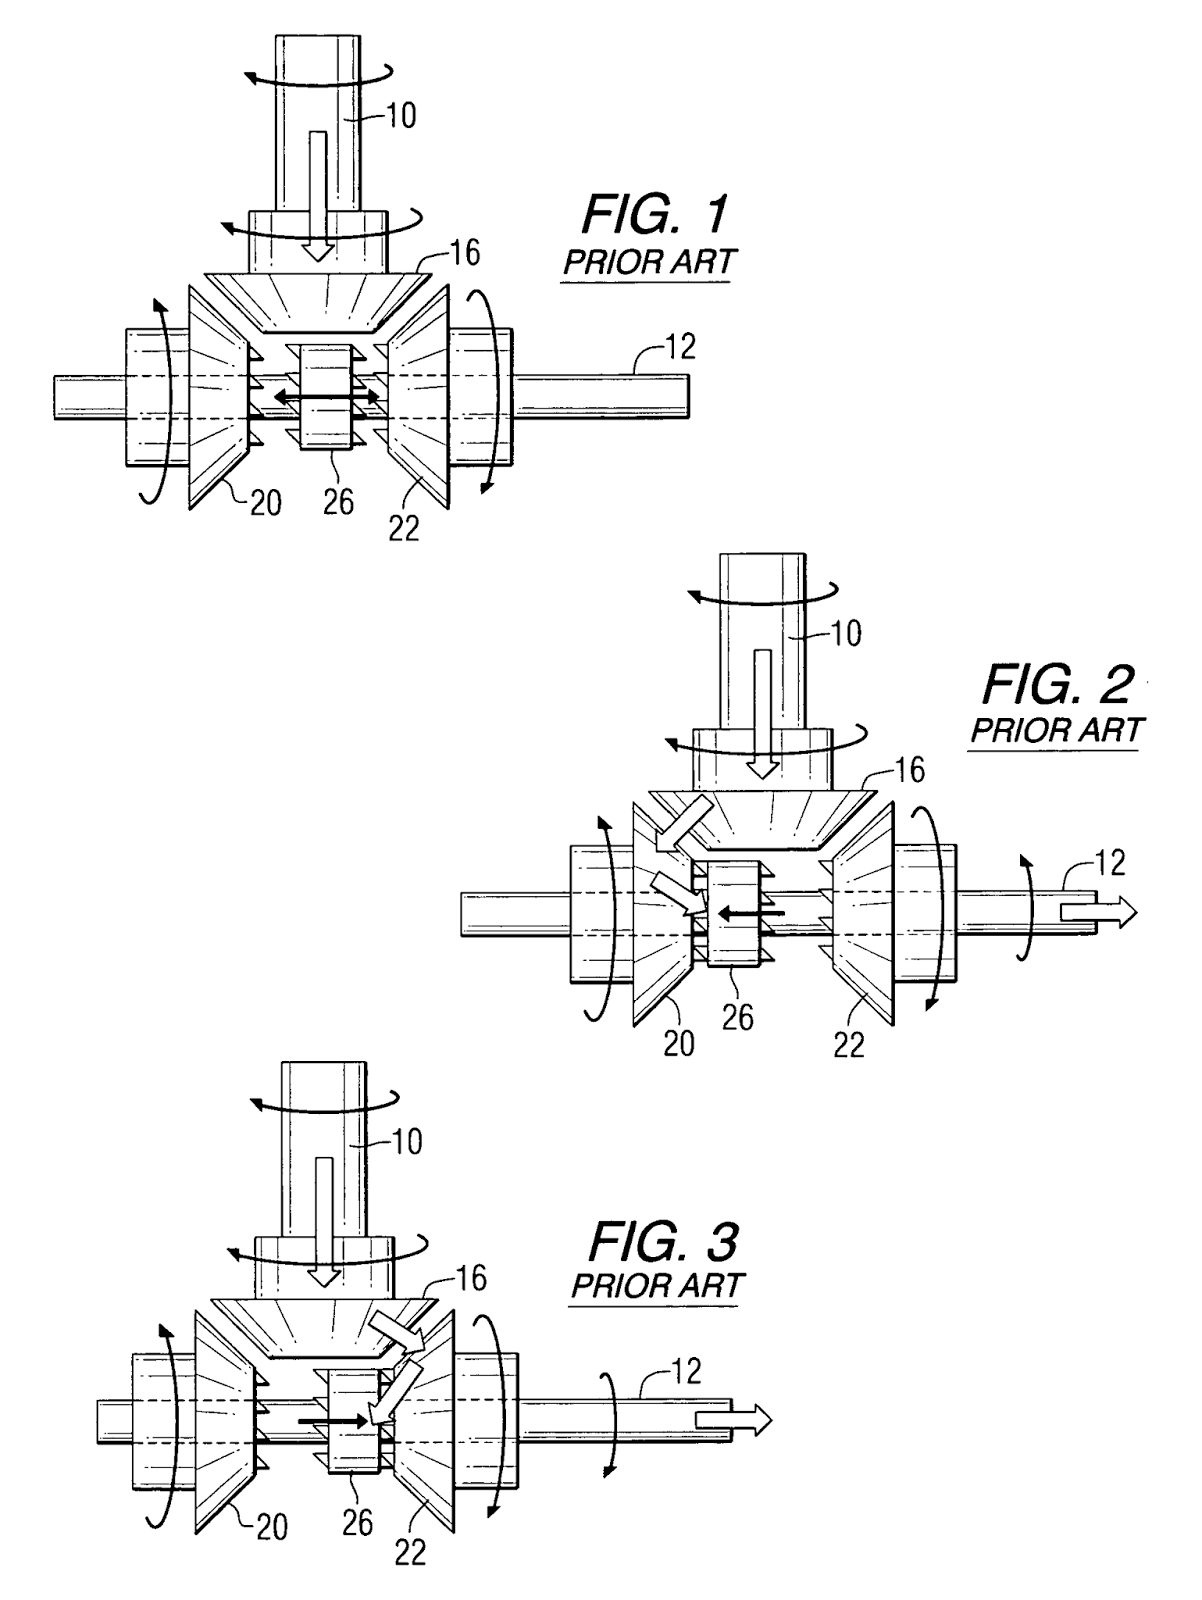 small resolution of 9 1983 discloses a system marine drivetrain a drive assembly reversal double cone clutch for a boat comprising a horizontal input shaft